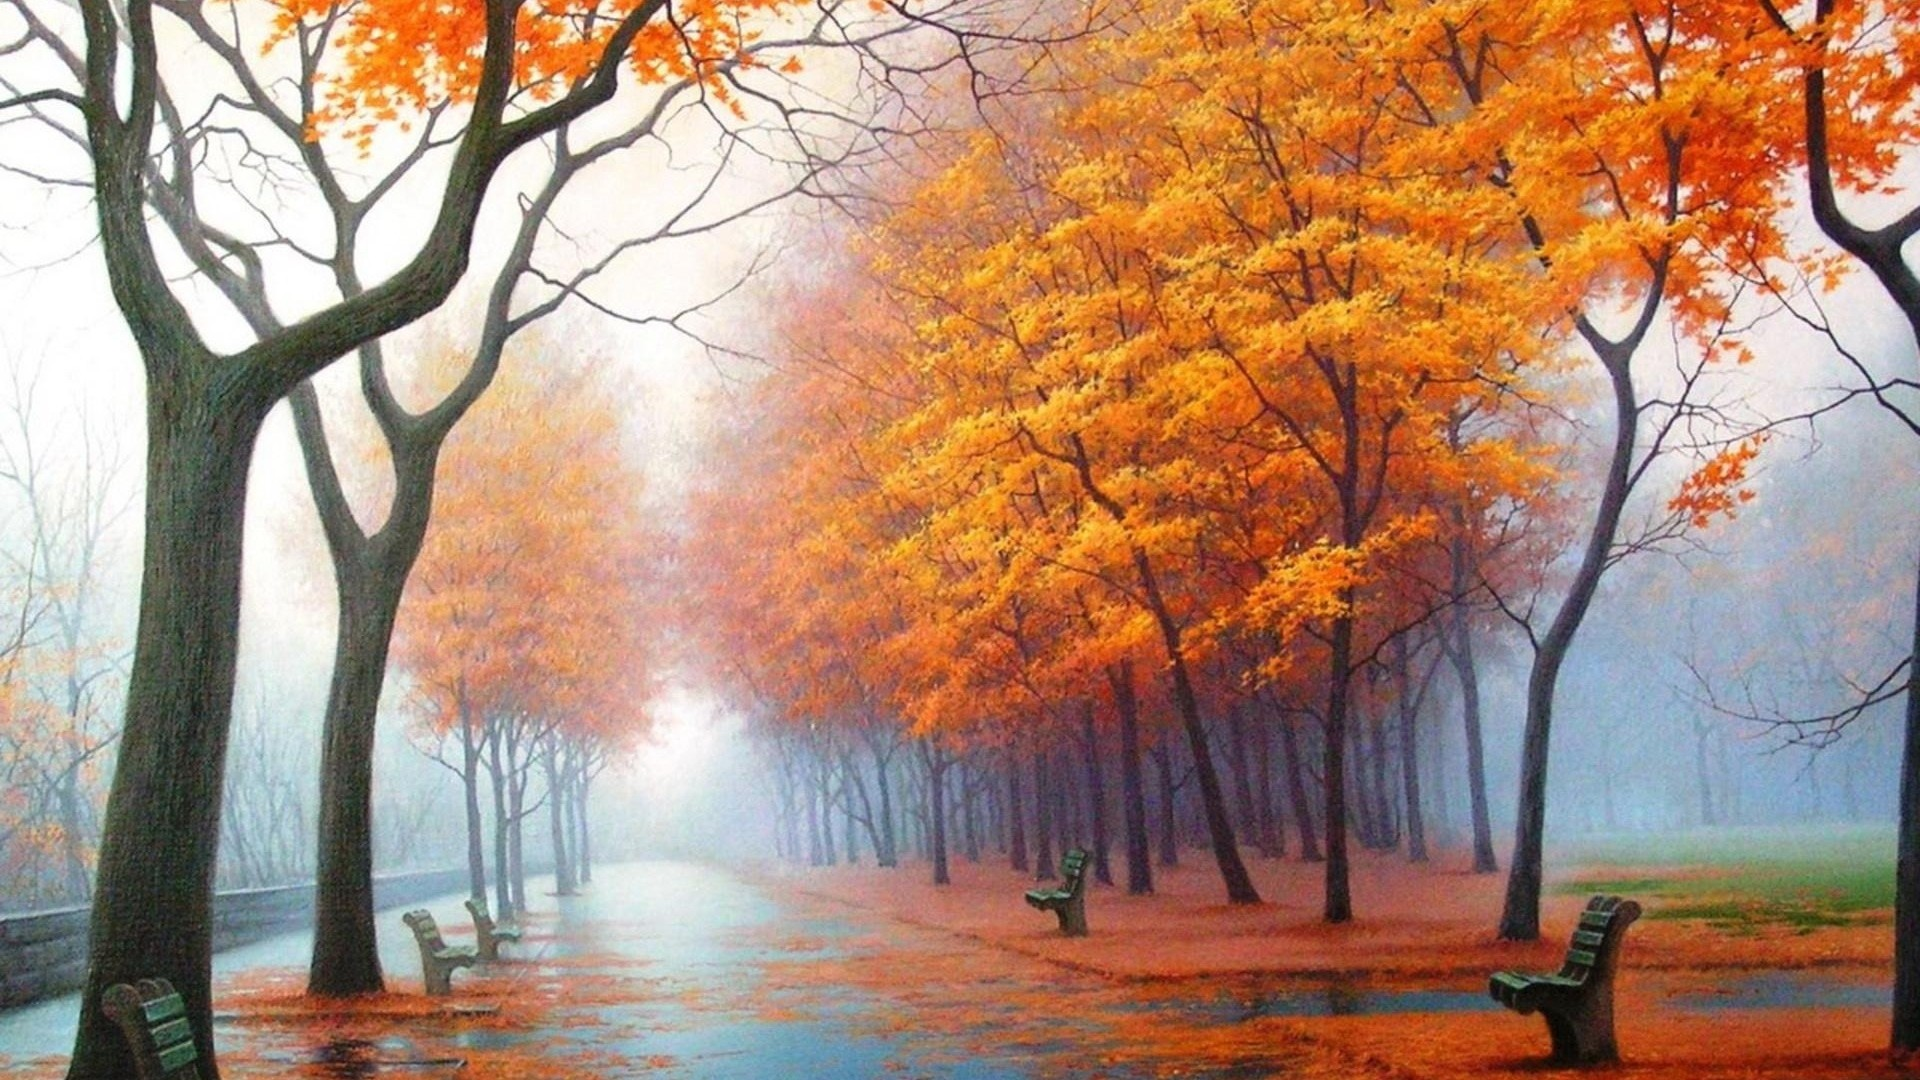 Preview wallpaper autumn, park, avenue, benches, trees, leaf fall, fog